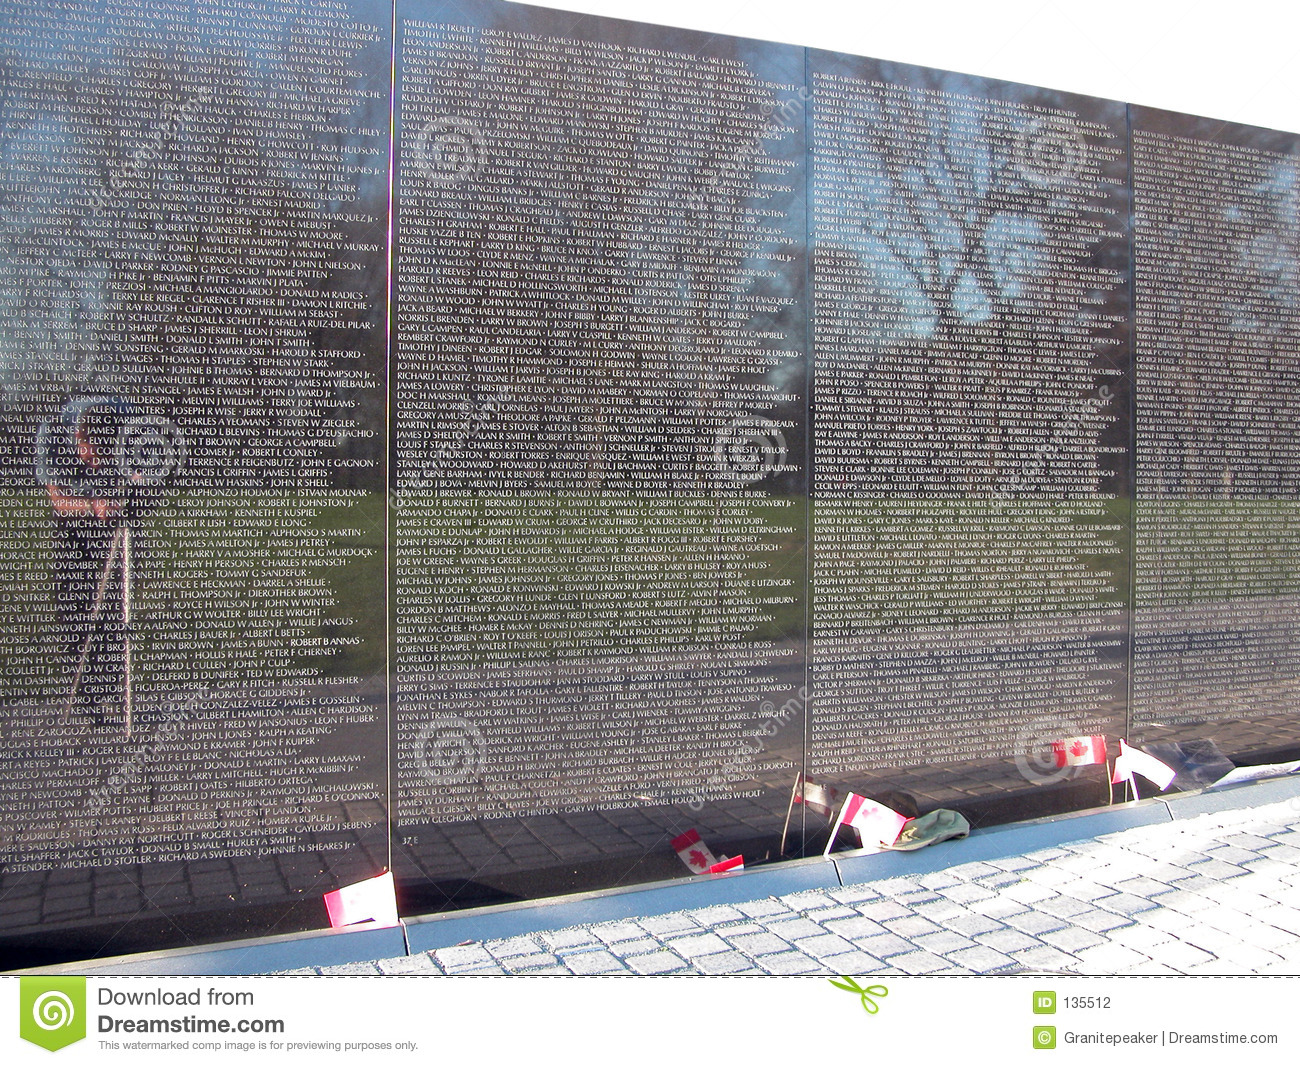 Vietnam Wall : Vietnam Wall Memorial Stock Photography - Image: 135512